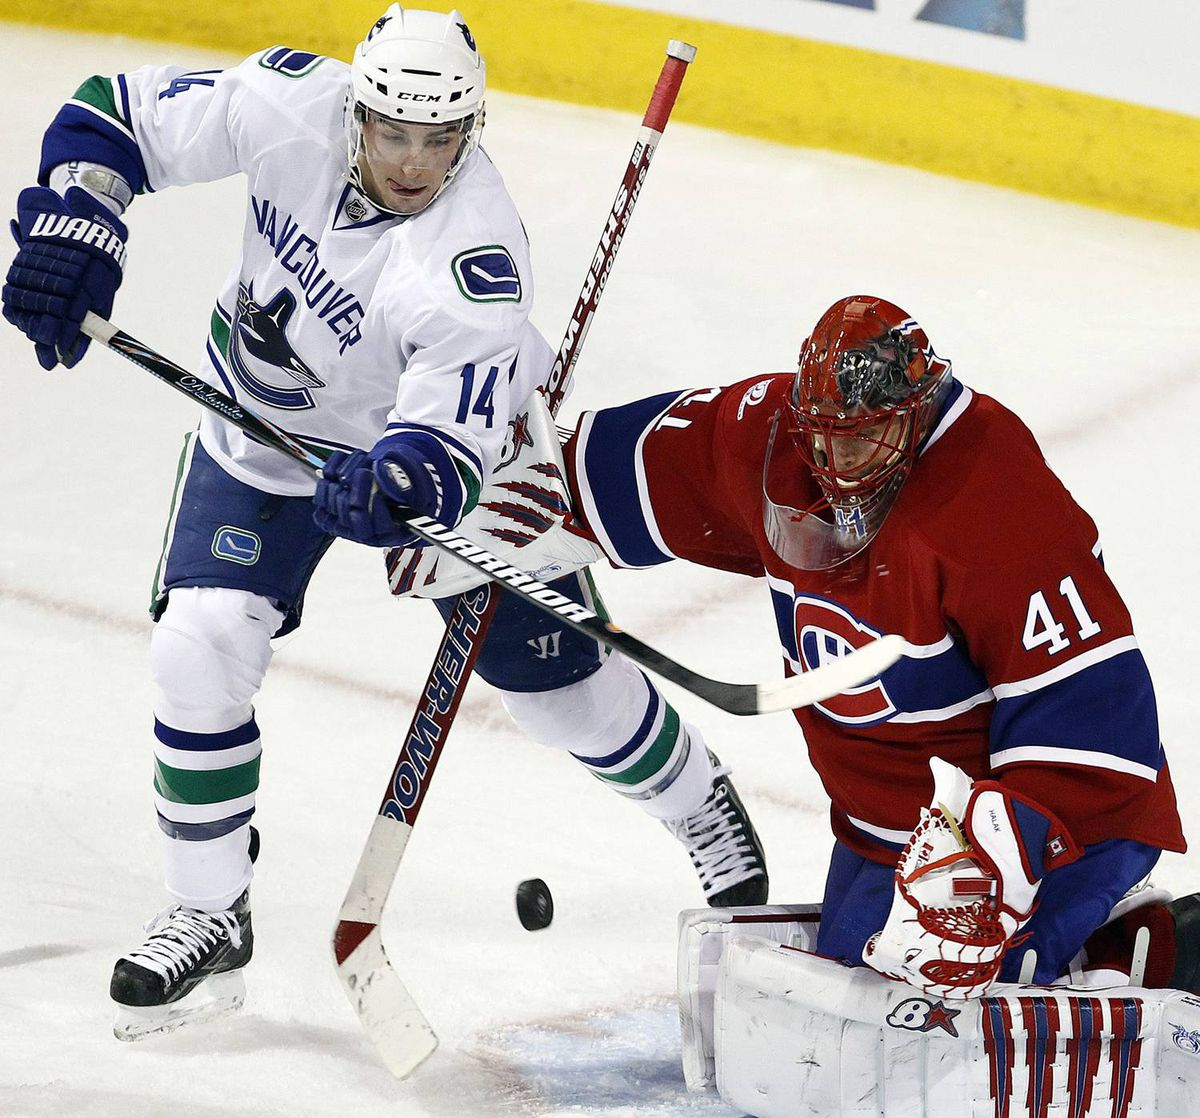 Montreal Canadiens goalie Jaroslav Halak (41) makes a save on Vancouver Canucks Alex Burrows (14) during third period NHL hockey action in Montreal, February 2, 2010. REUTERS/Christinne Muschi